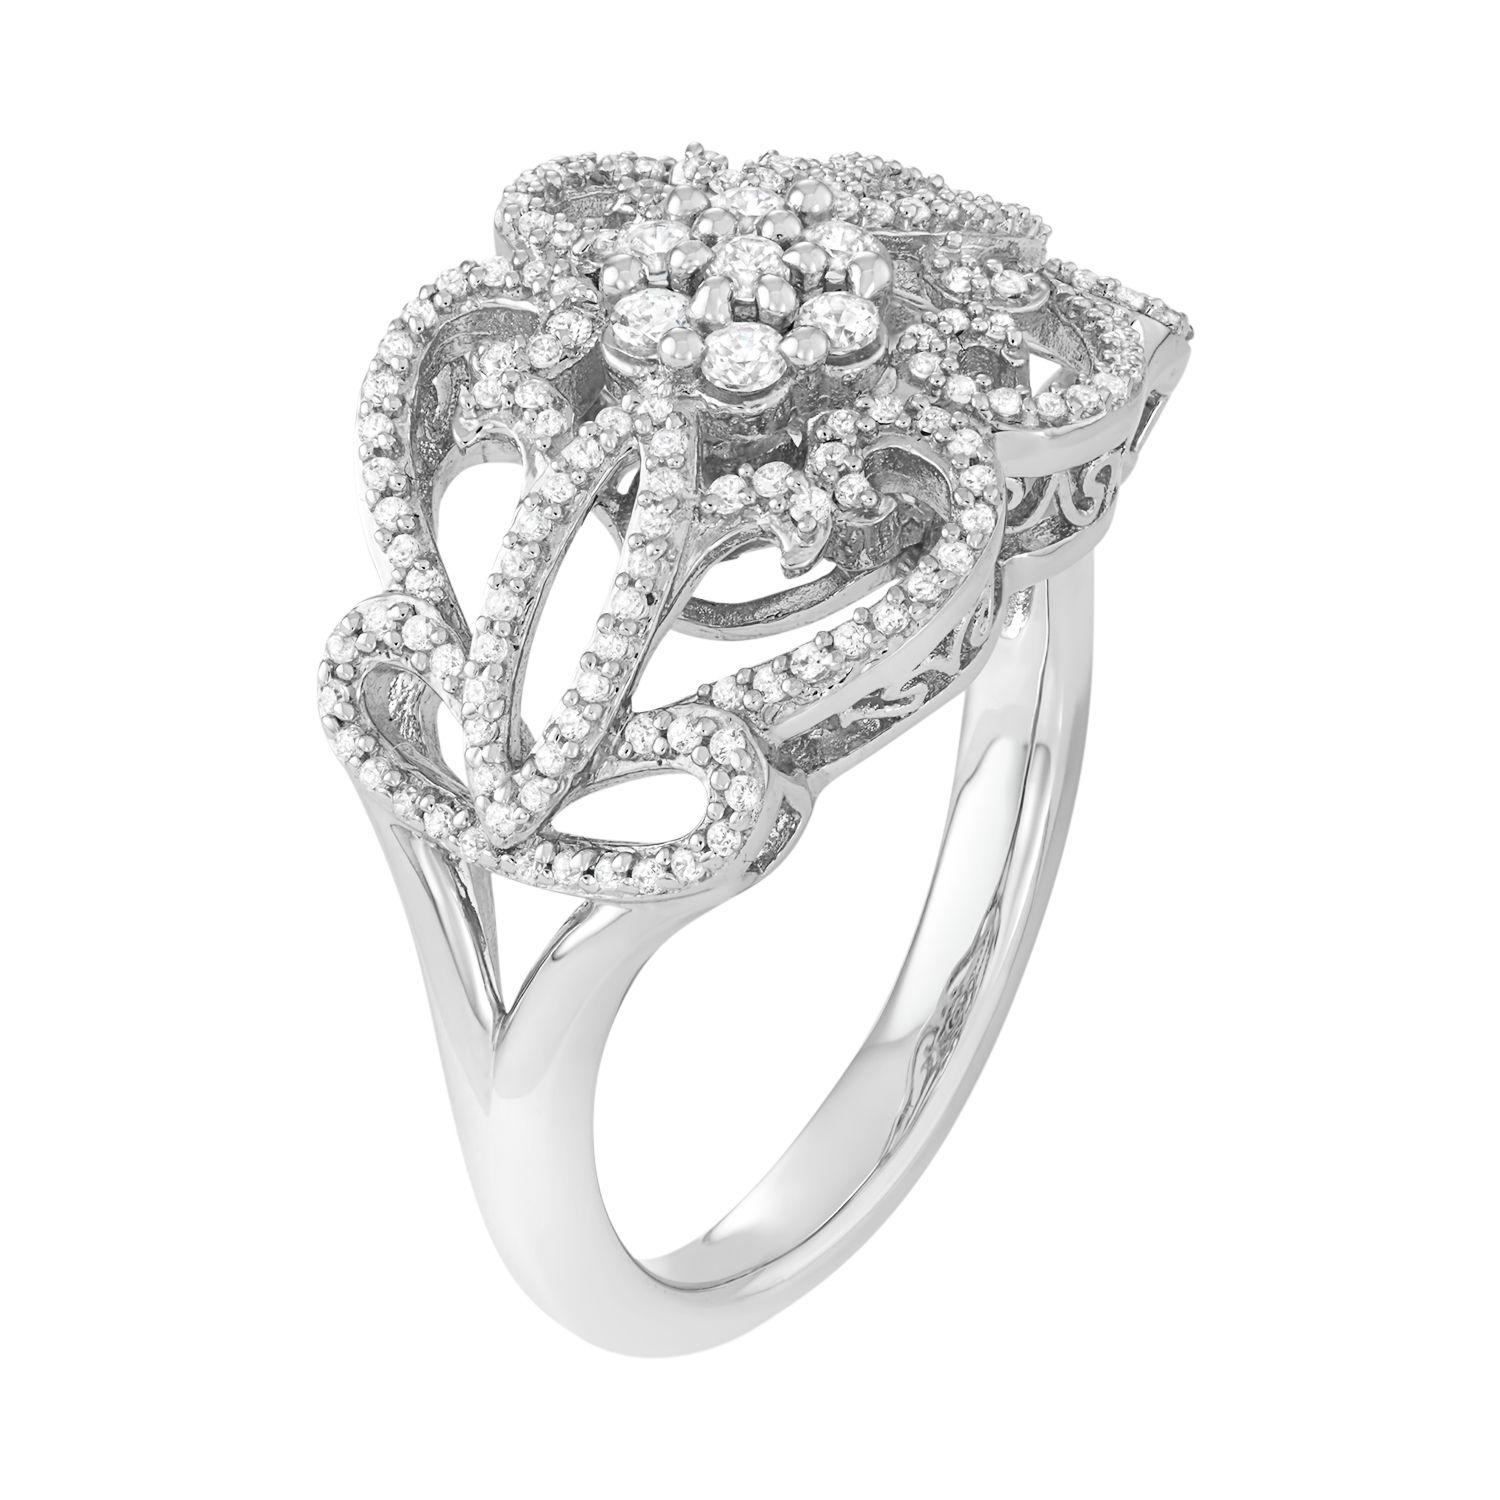 moments special the t and since mazzucchelli incomparable white wang beauty life unmatched gold offers rings collections n from eternity celebrating captivating collection w engagement this ring s love quality vera